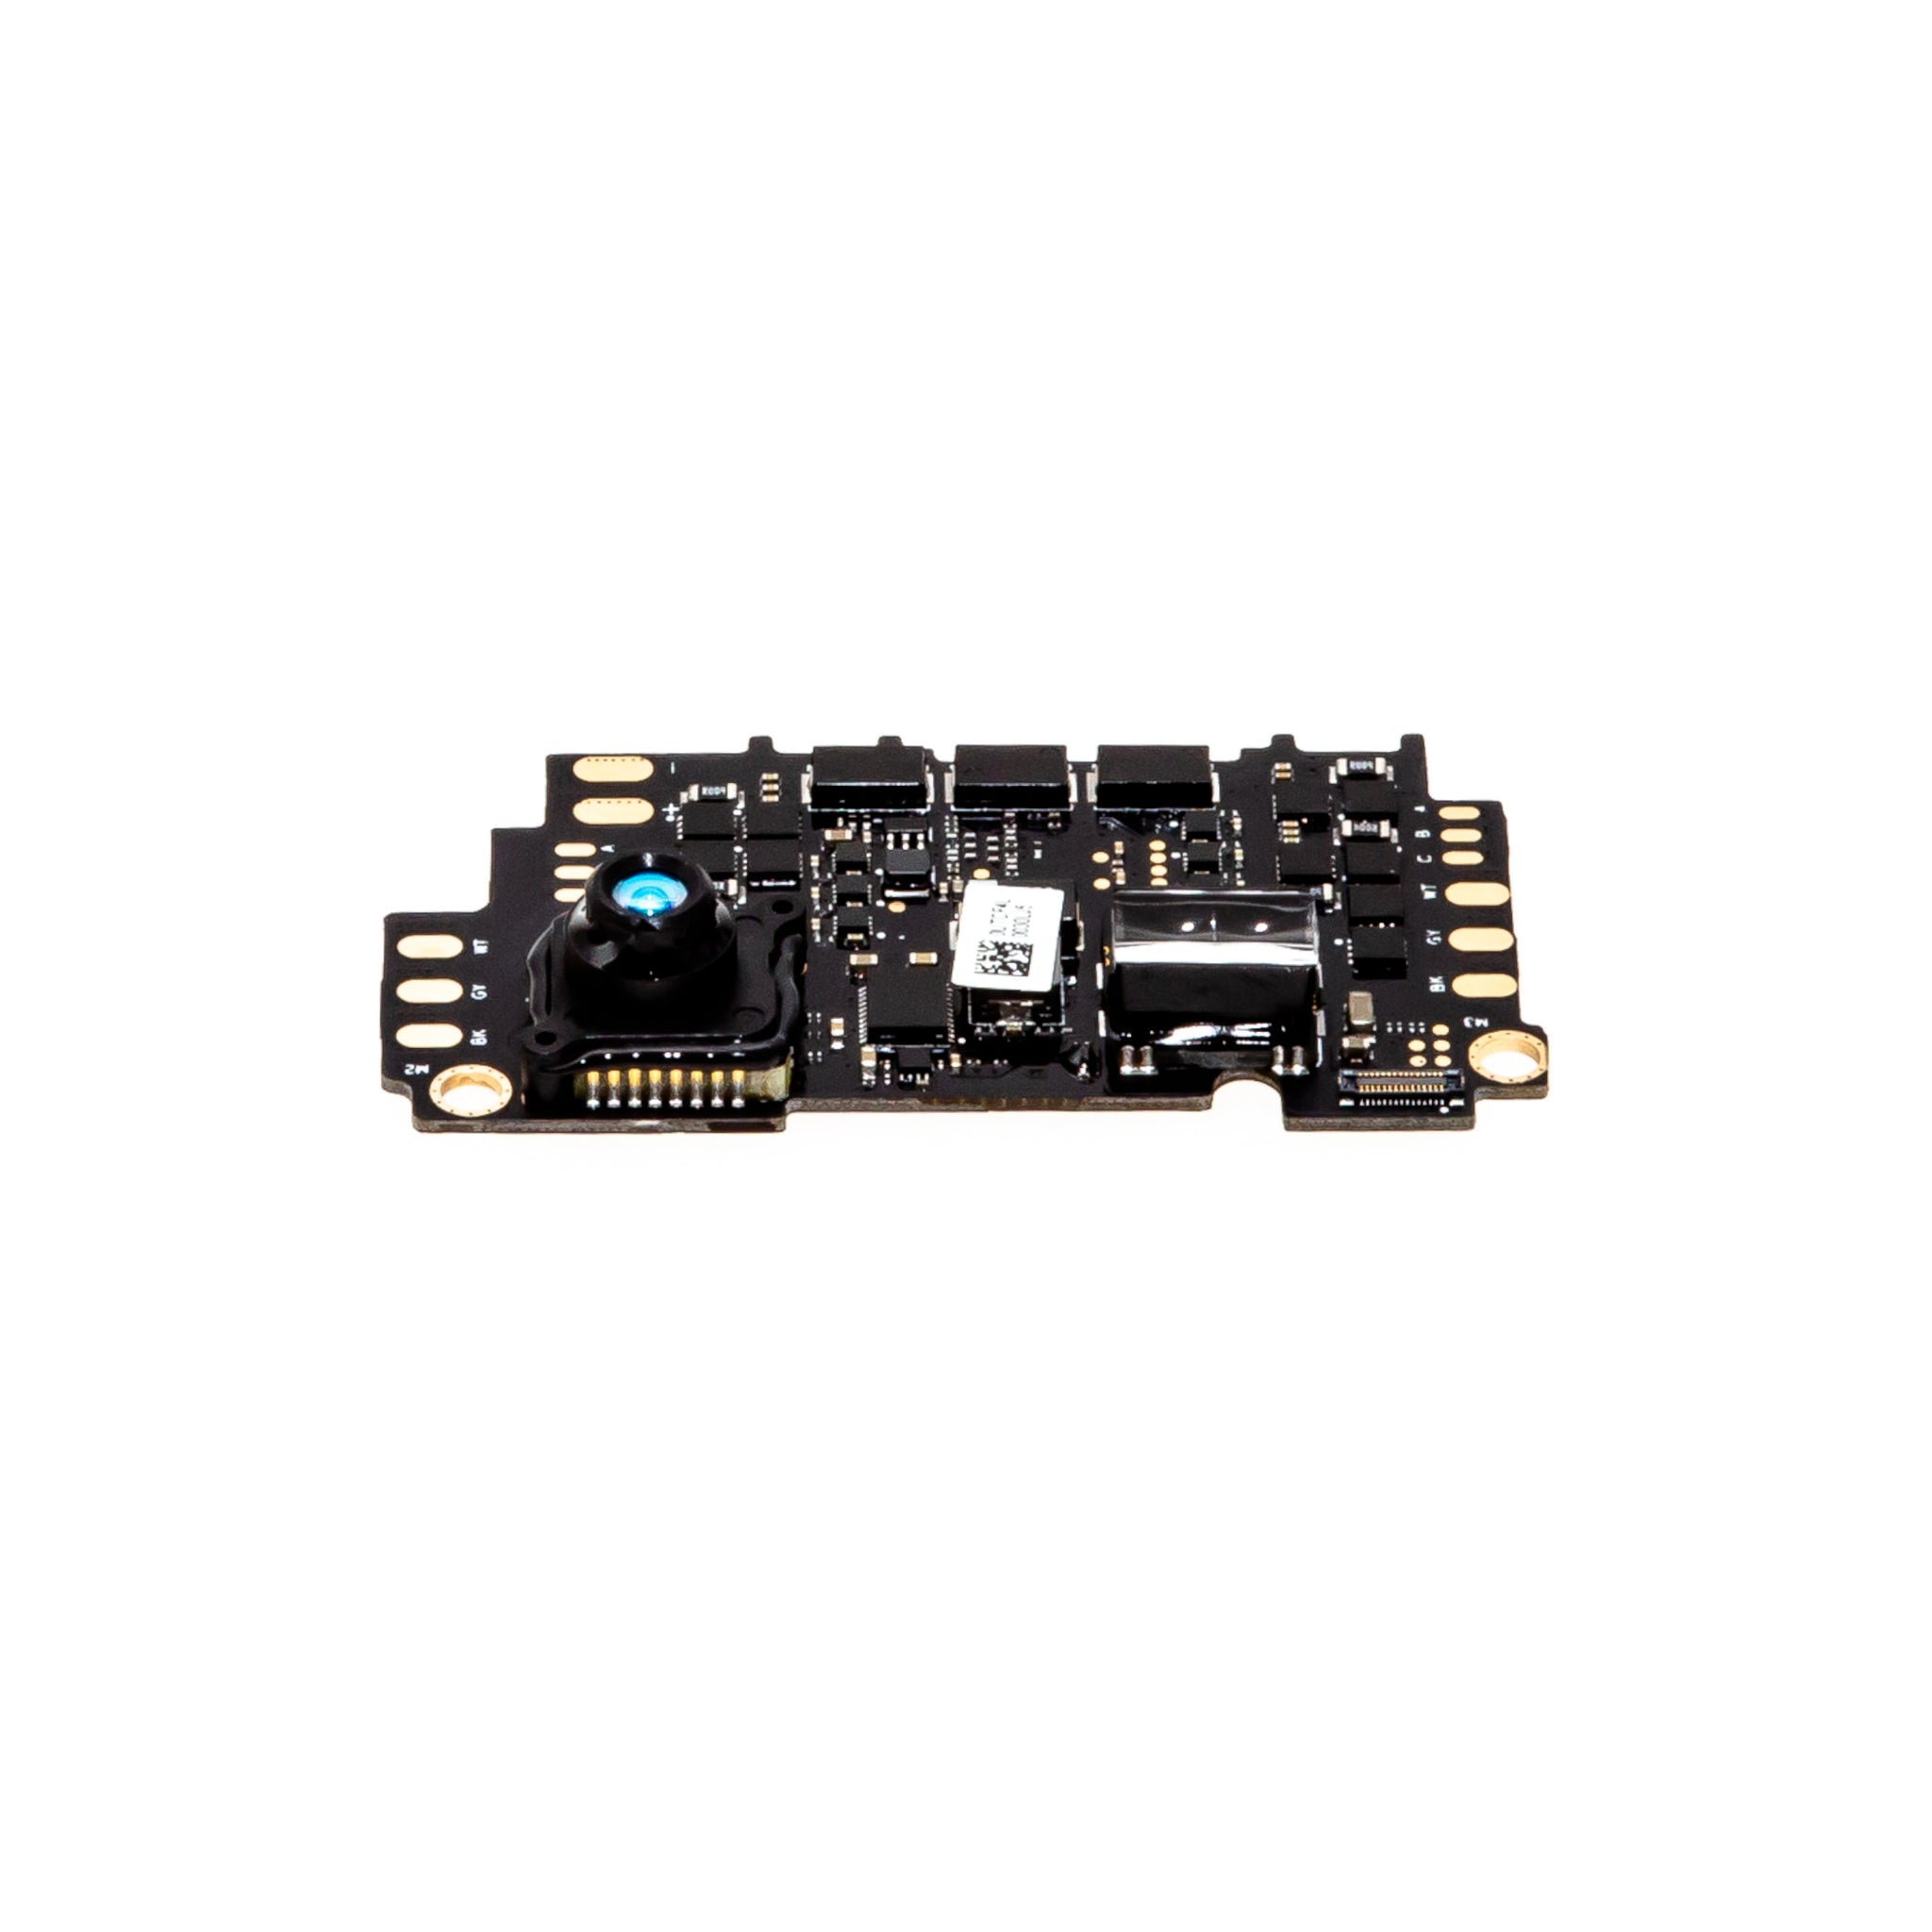 DJI Phantom 4 Pro V2 - Left ESC Board